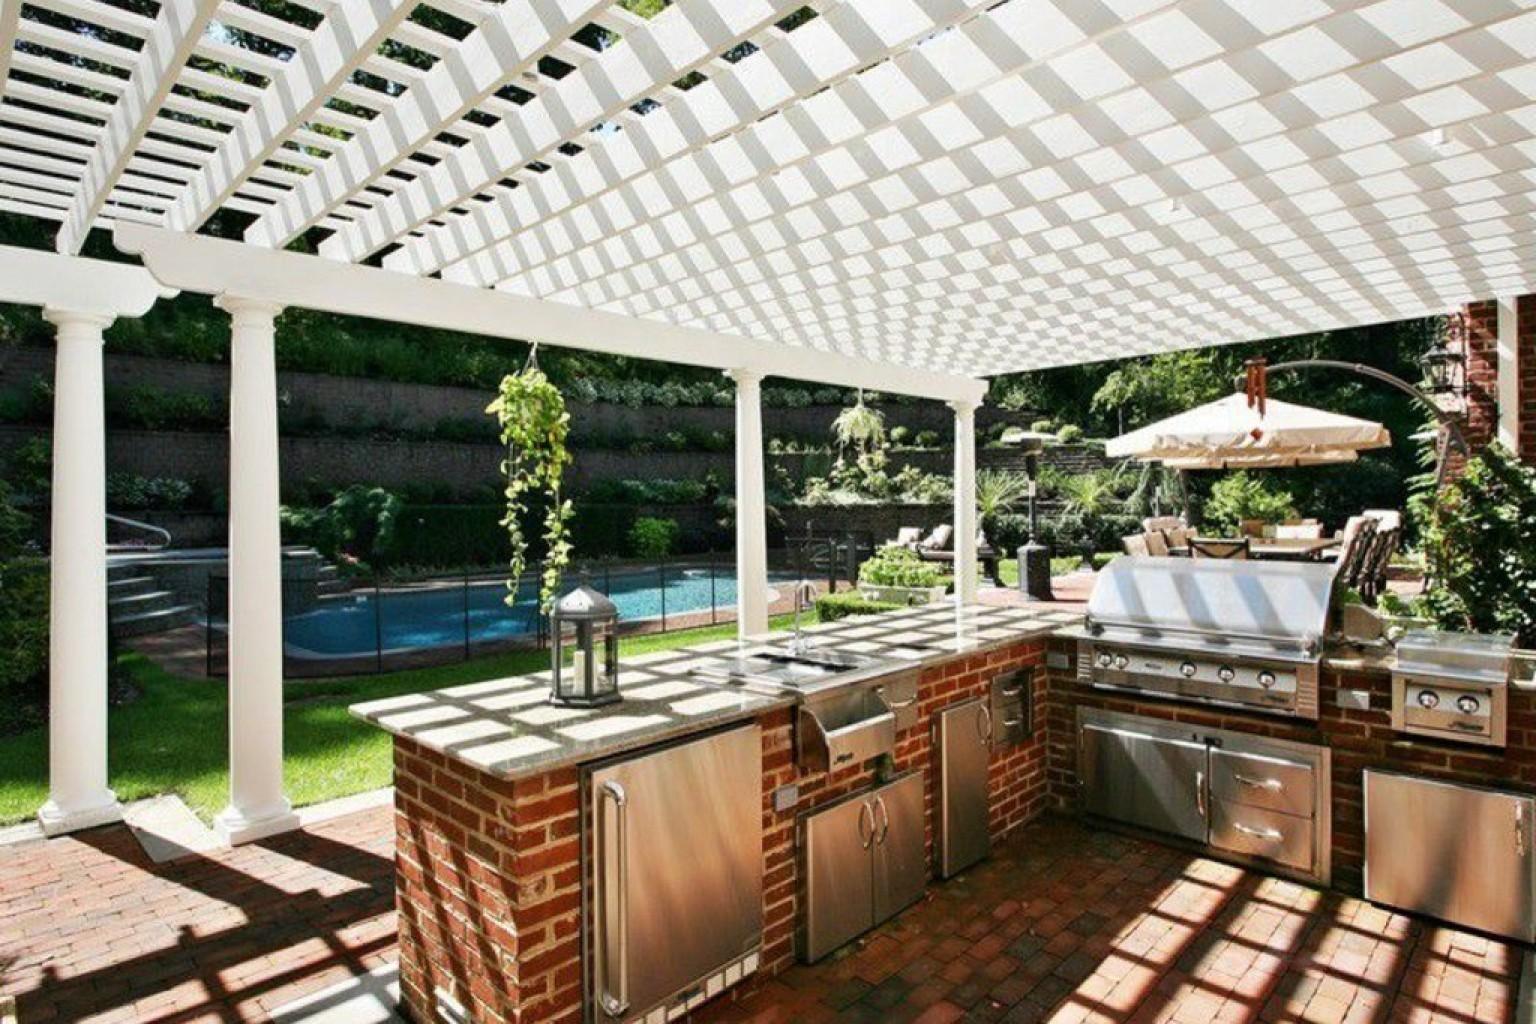 Outdoor Kitchen Design Ideas Backyard 14 incredible outdoor kitchens that go way beyond grills (photos